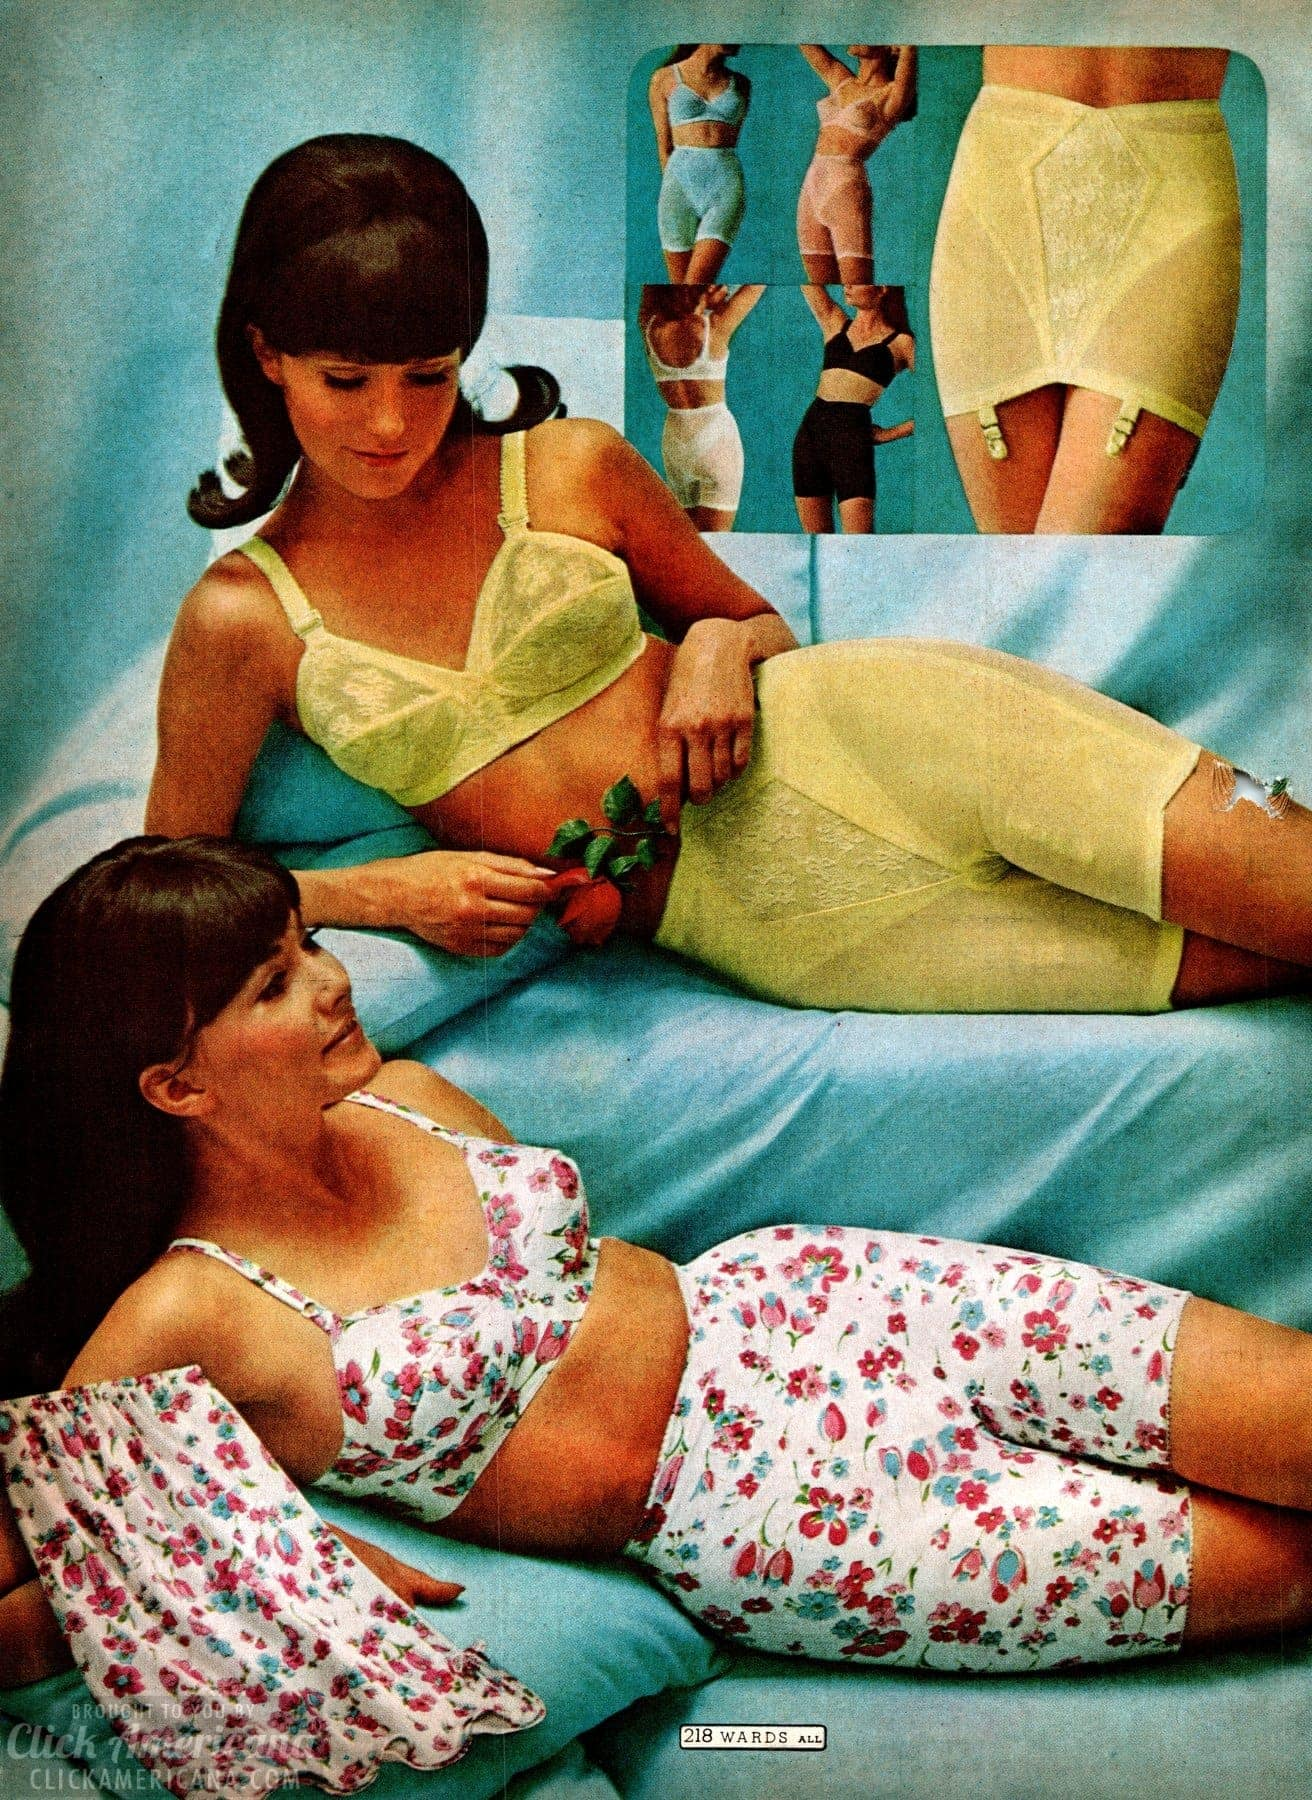 Colorful vintage girdle and bra sets from the 60s